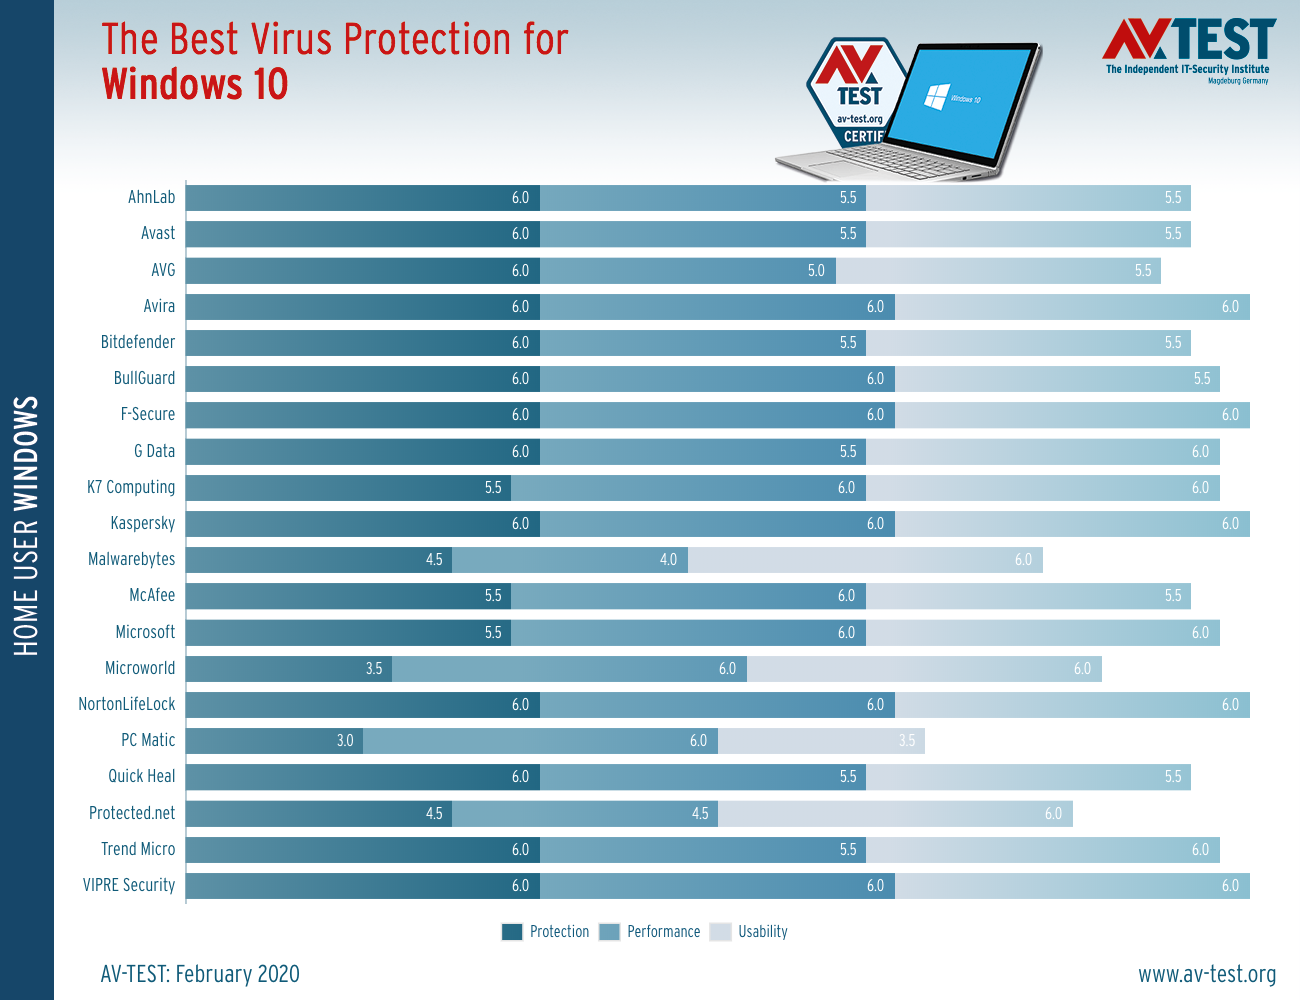 The best Virus Protection for Windows 10